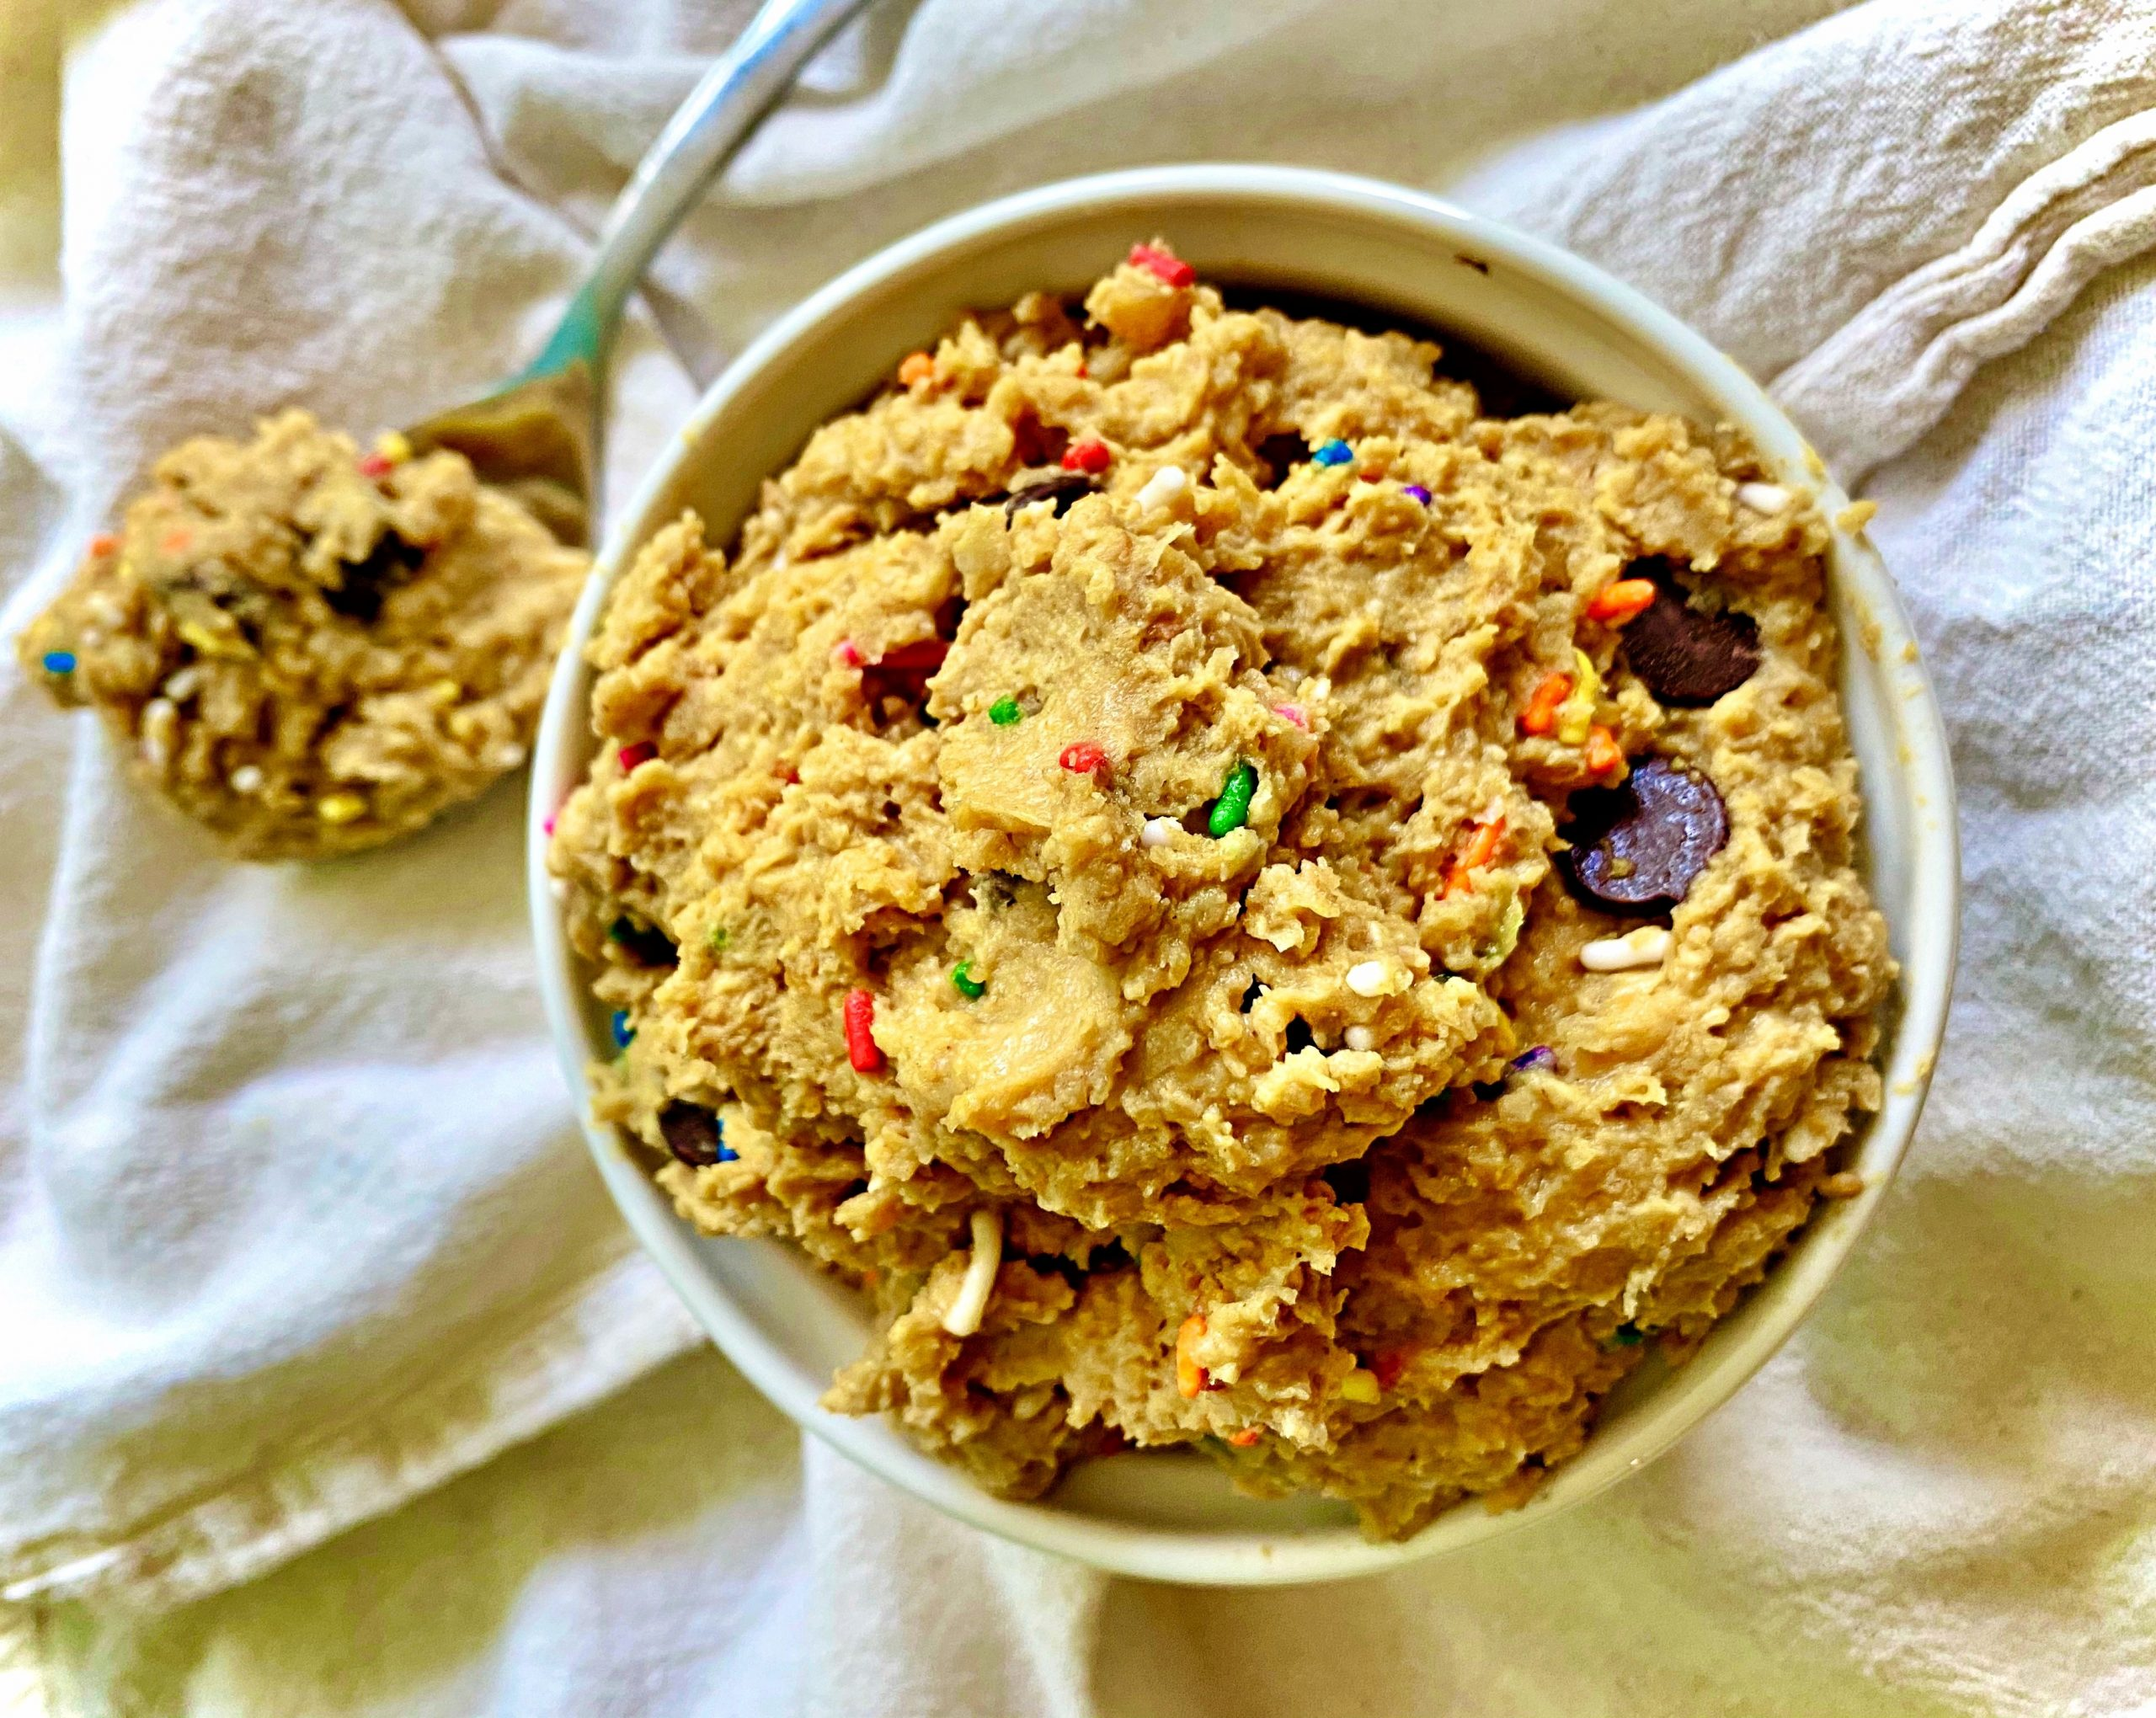 Edible Cookie Dough in serving ramekin with spoonful on table